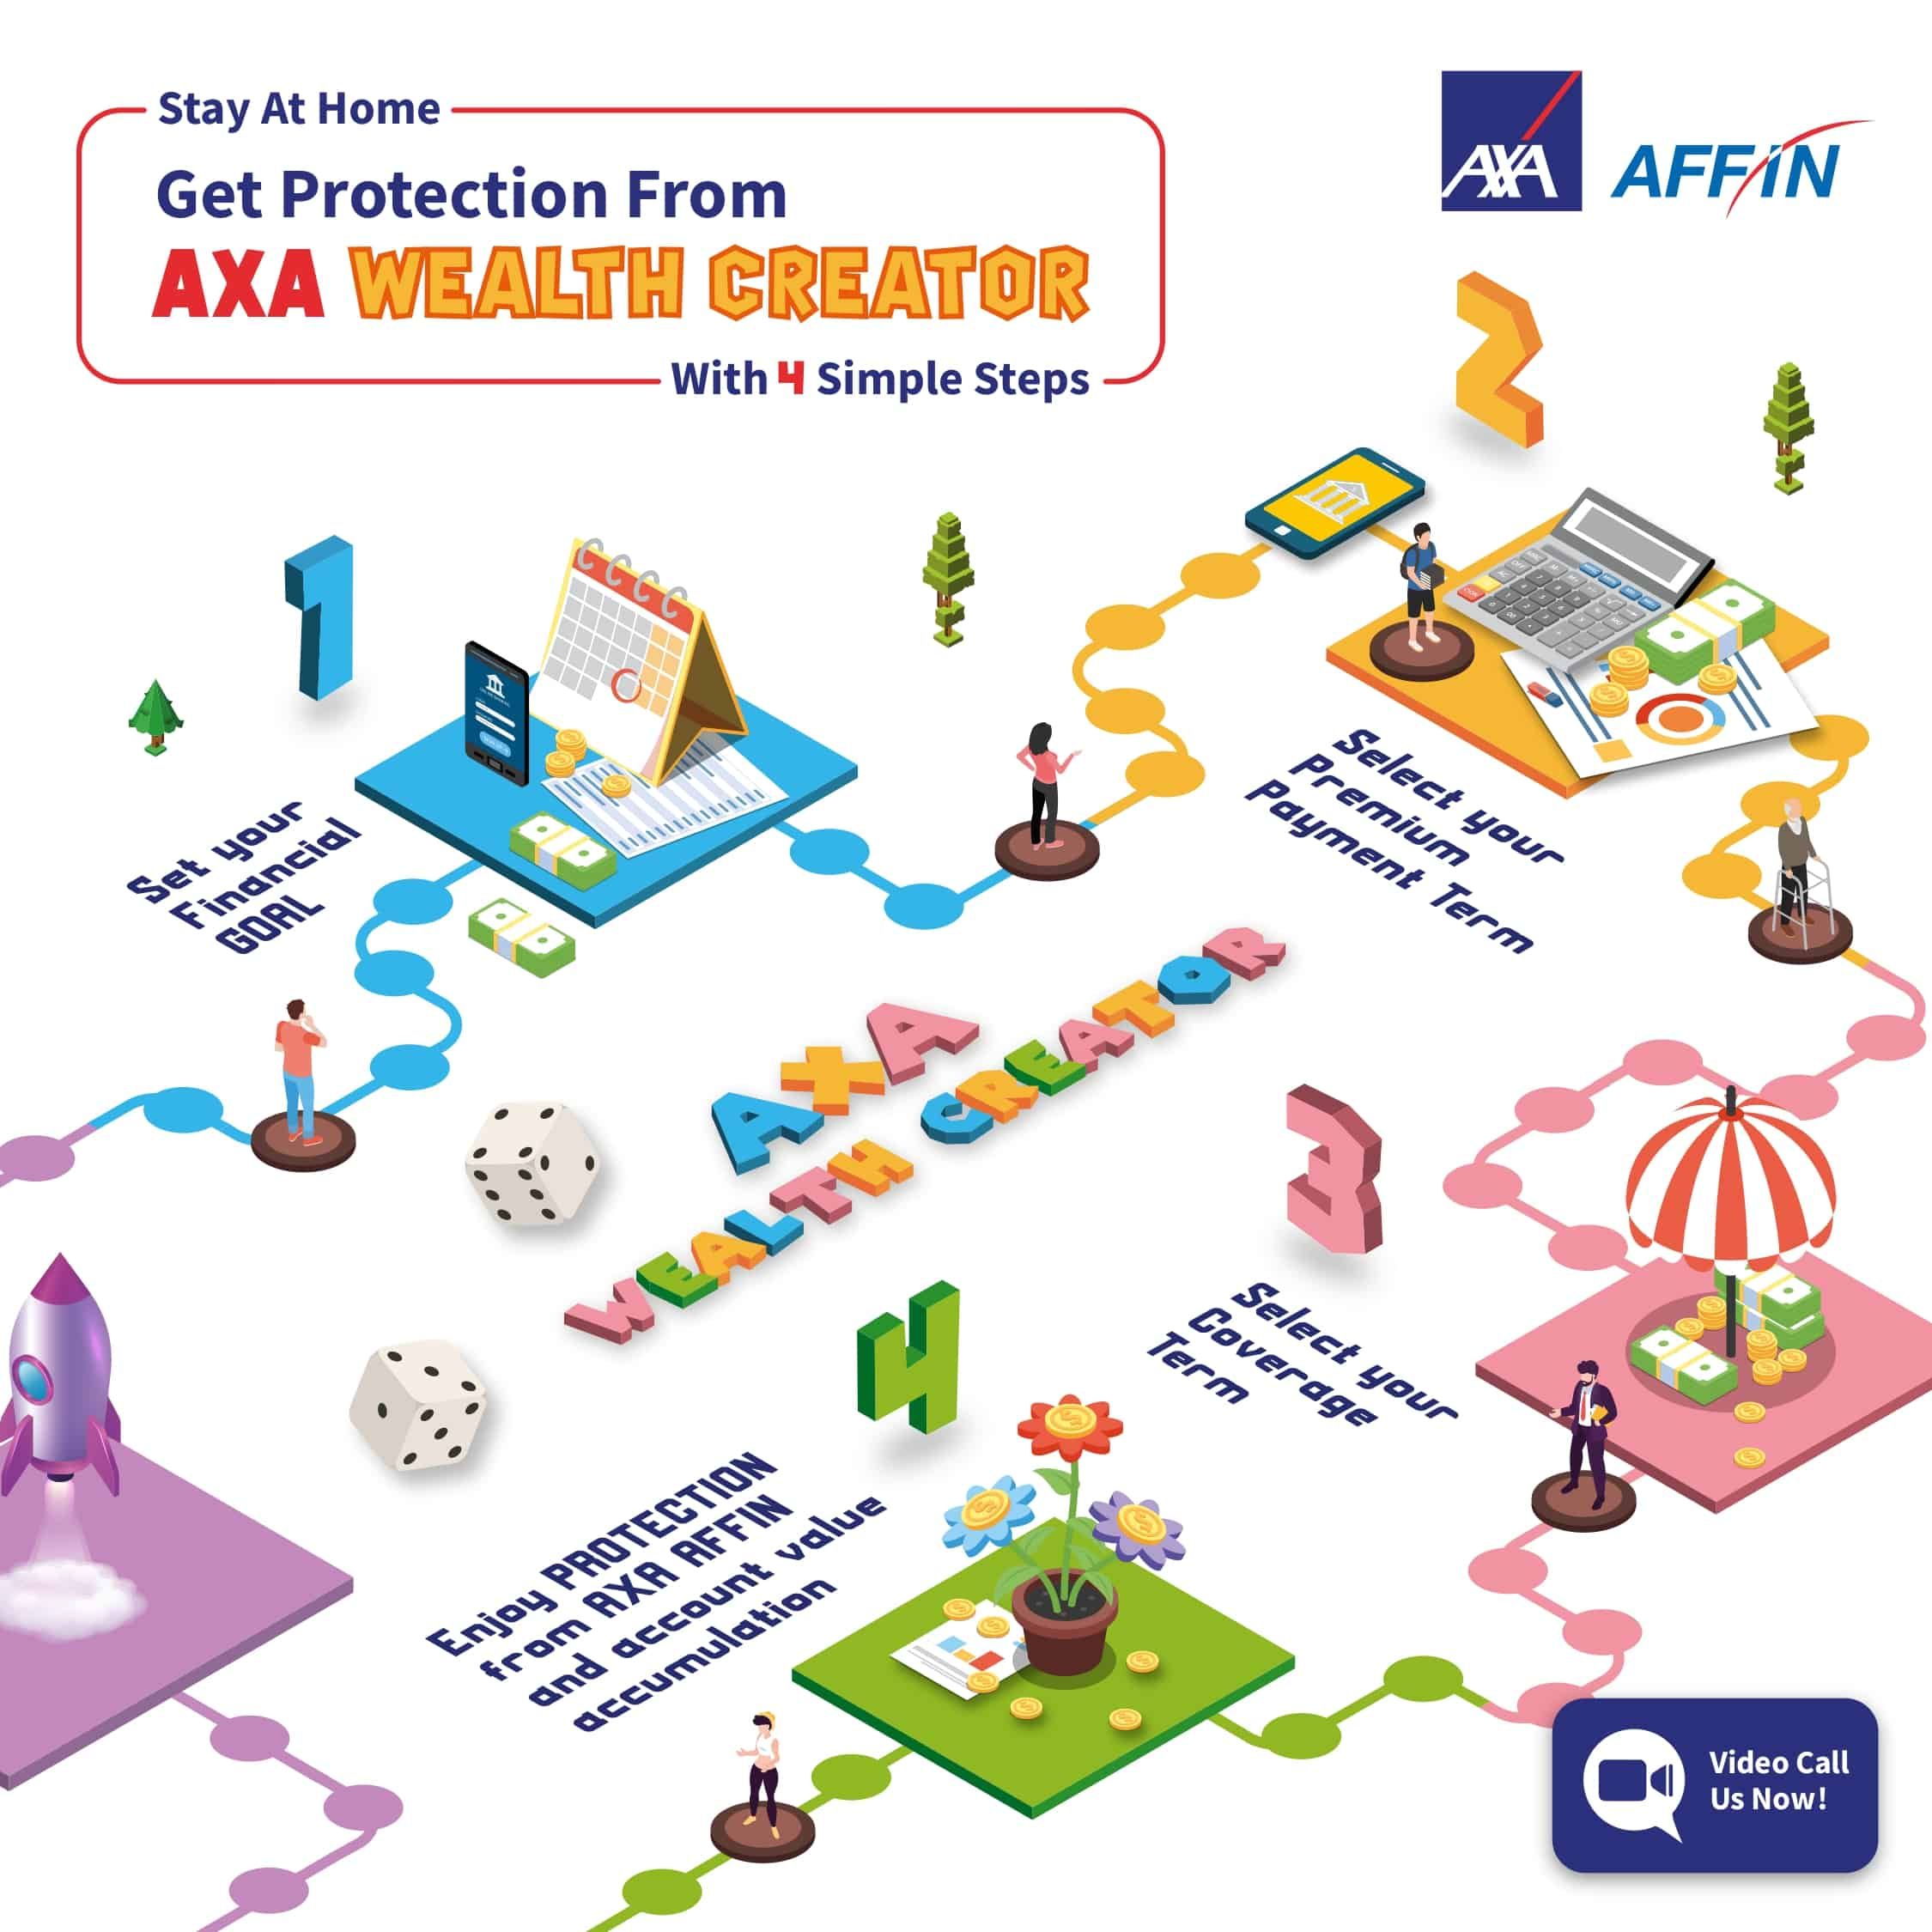 AXA Wealth Creator: Tailored to Protect Your Wealth